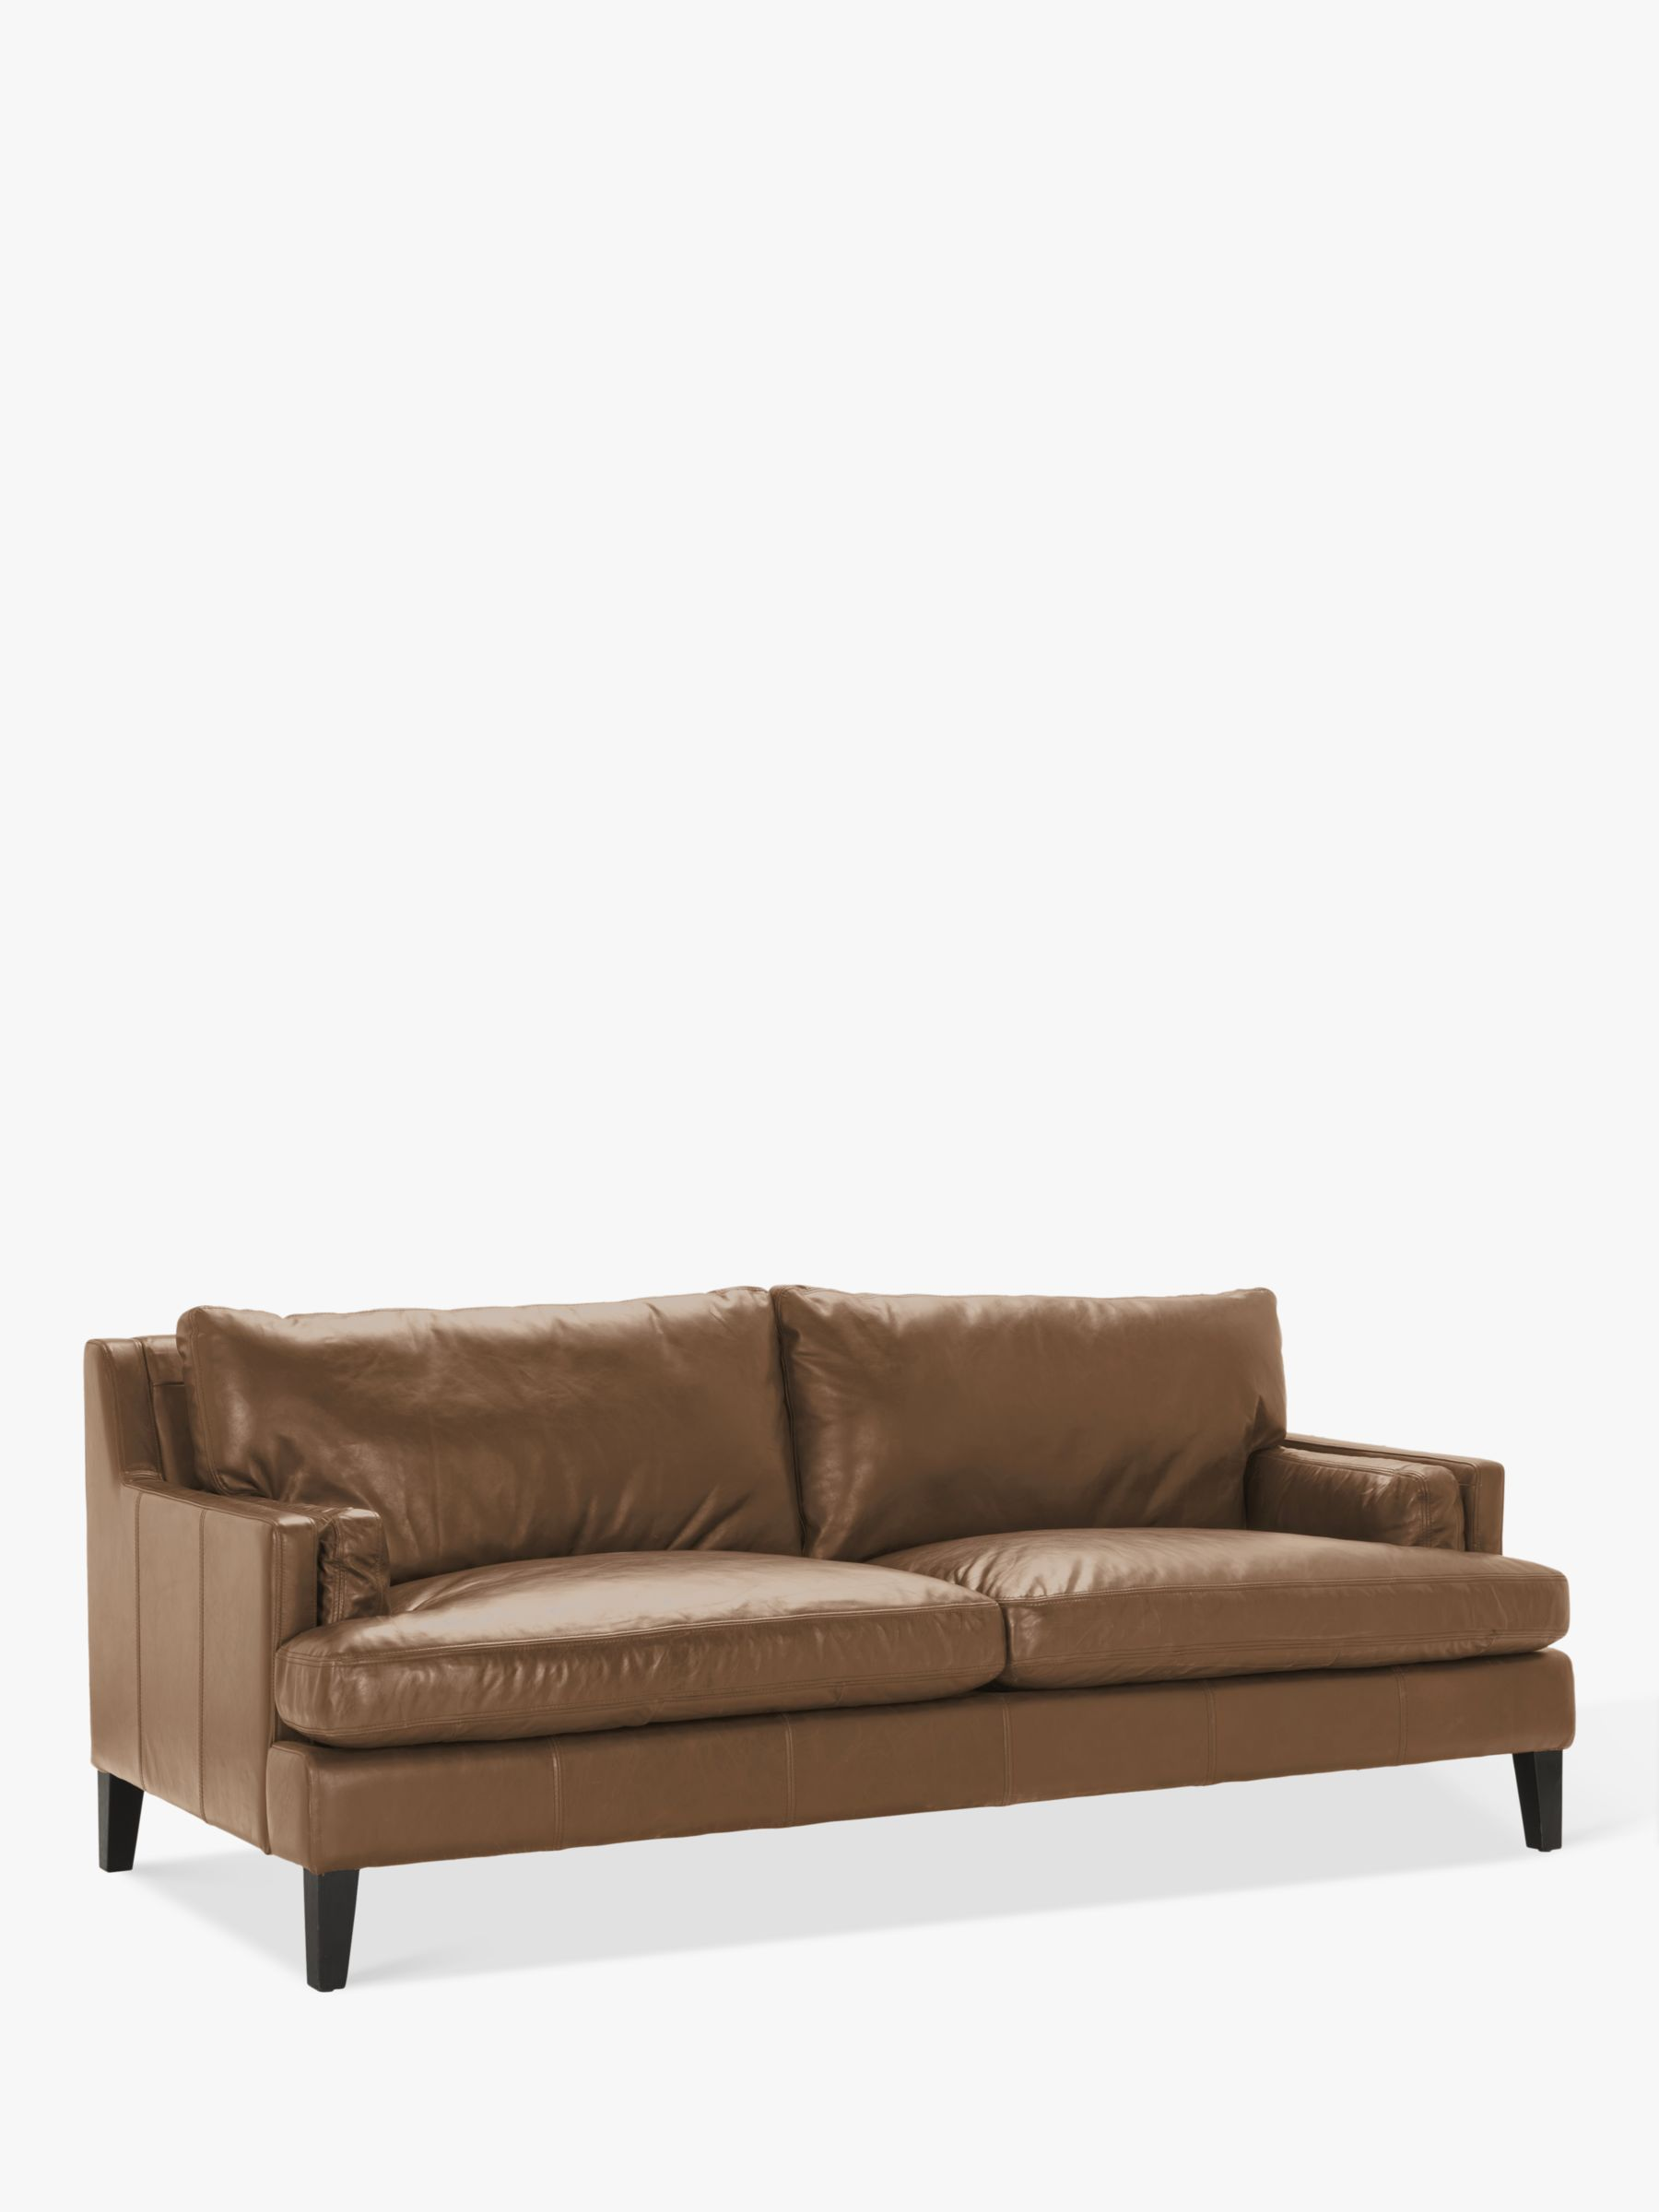 Halo canson large 3 seater leather sofa riders for Leather sofa 7 seater